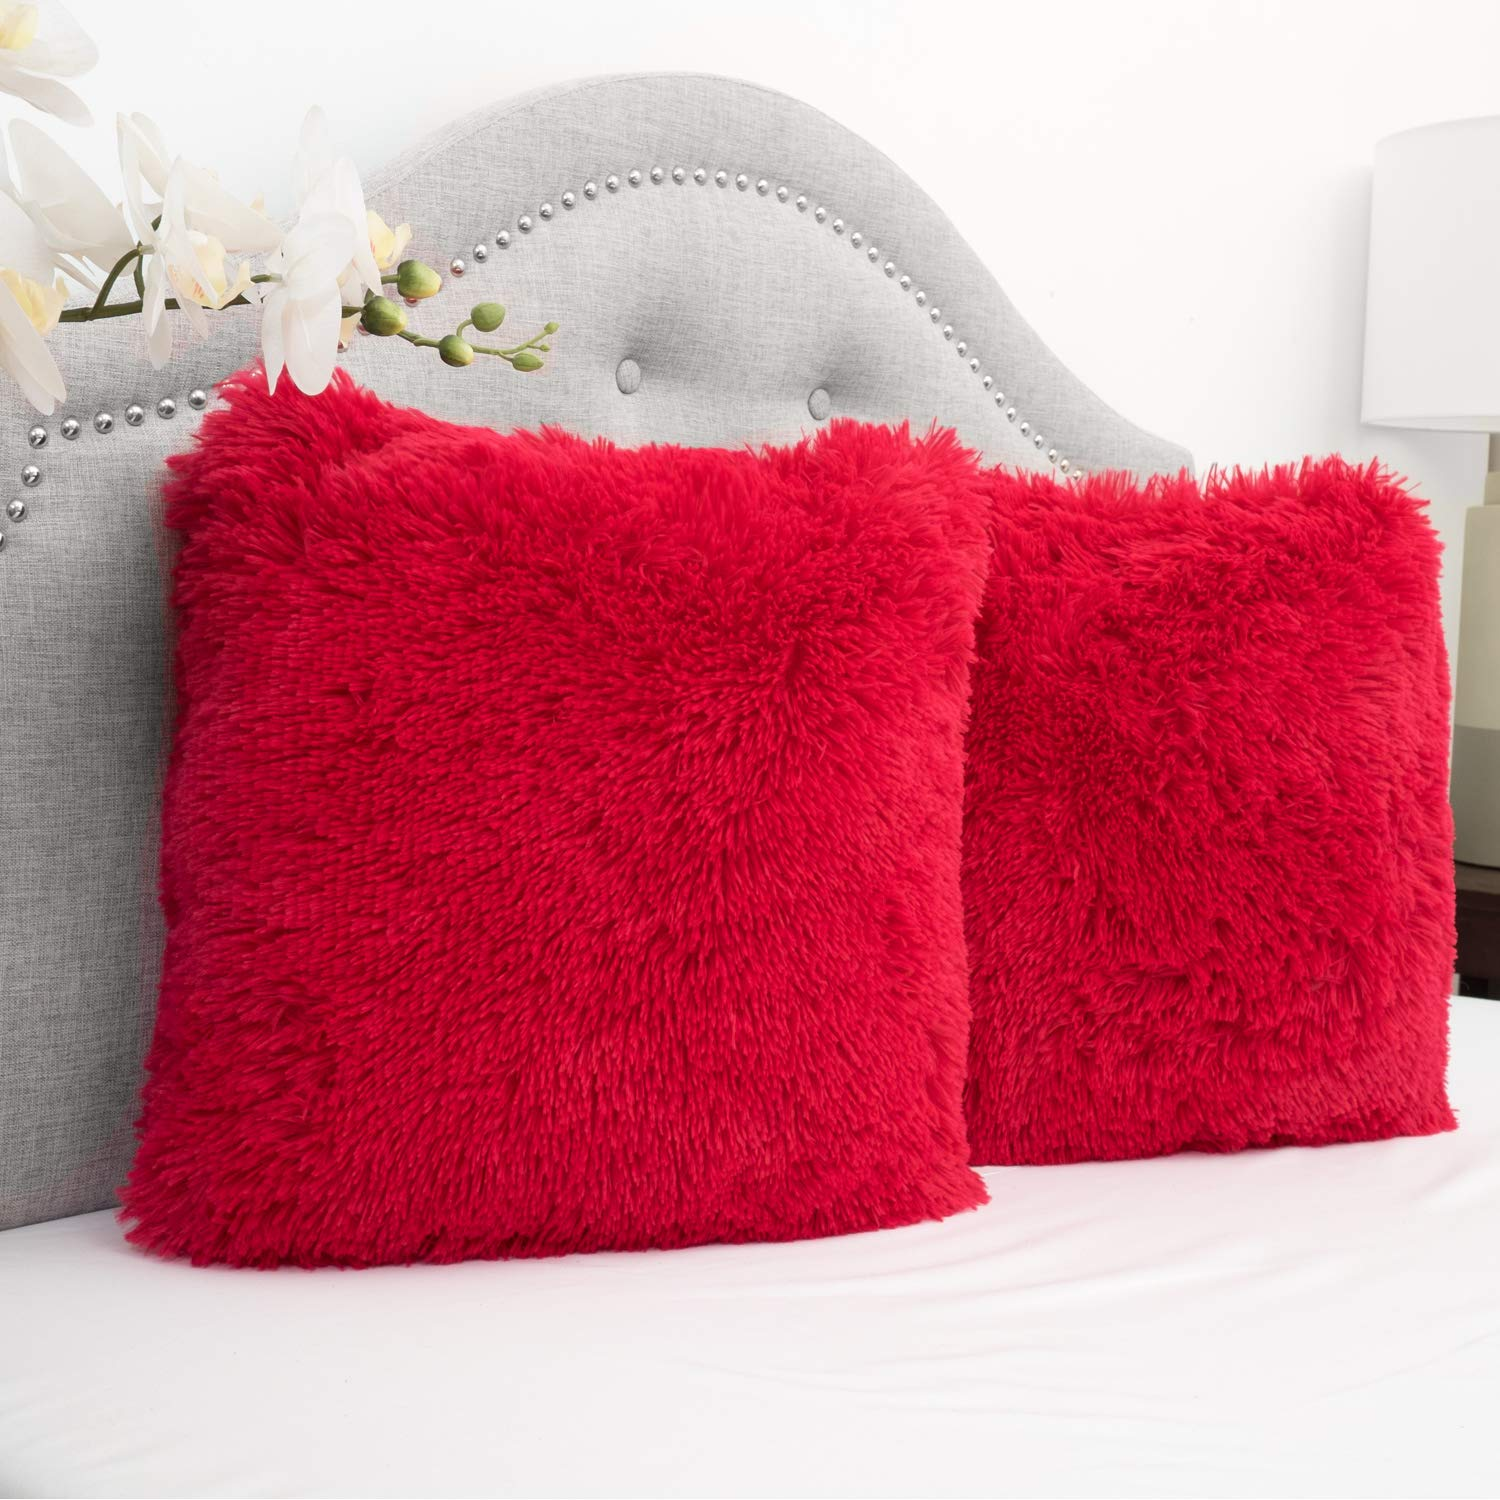 Sweet Home Collection Plush Faux Fur Soft and Comfy Throw Pillow, 2 Pack, Red